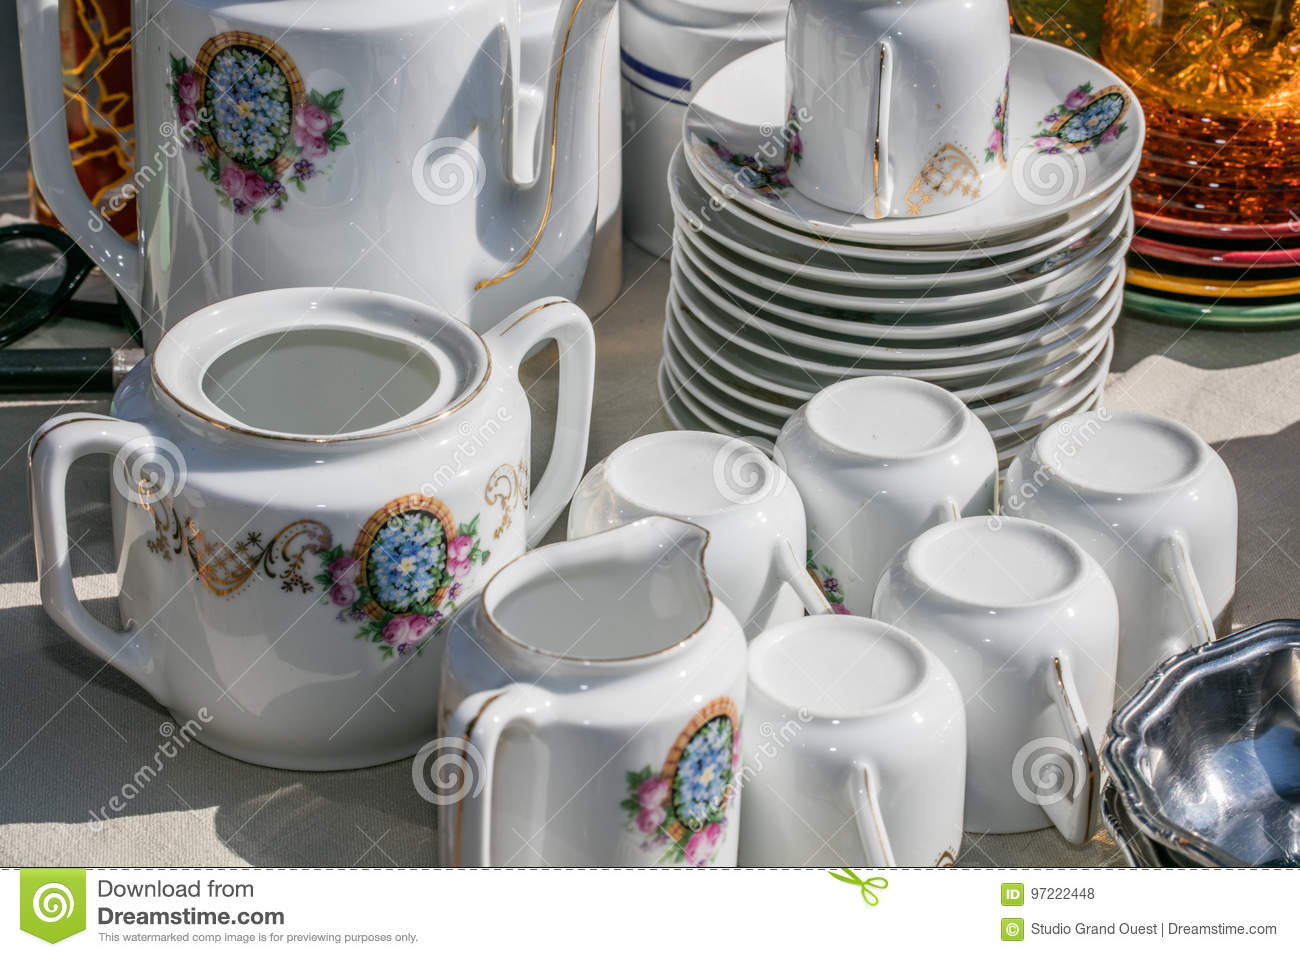 Retro Old Coffee Set With Cups Plates And Coffee Pot Stock Photo